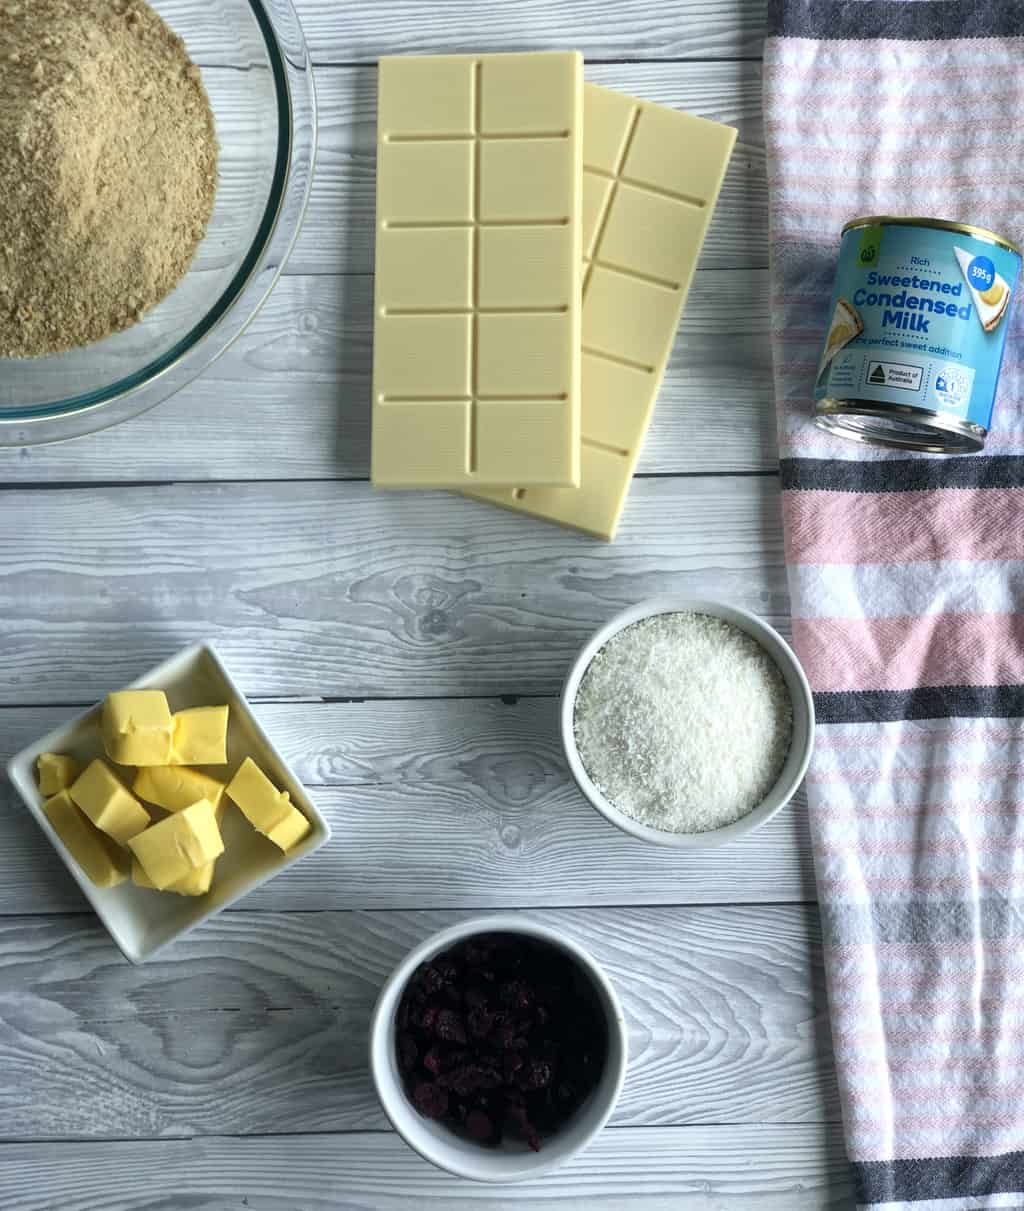 Easy ingredients for the no bake slice, see recipe for full details.